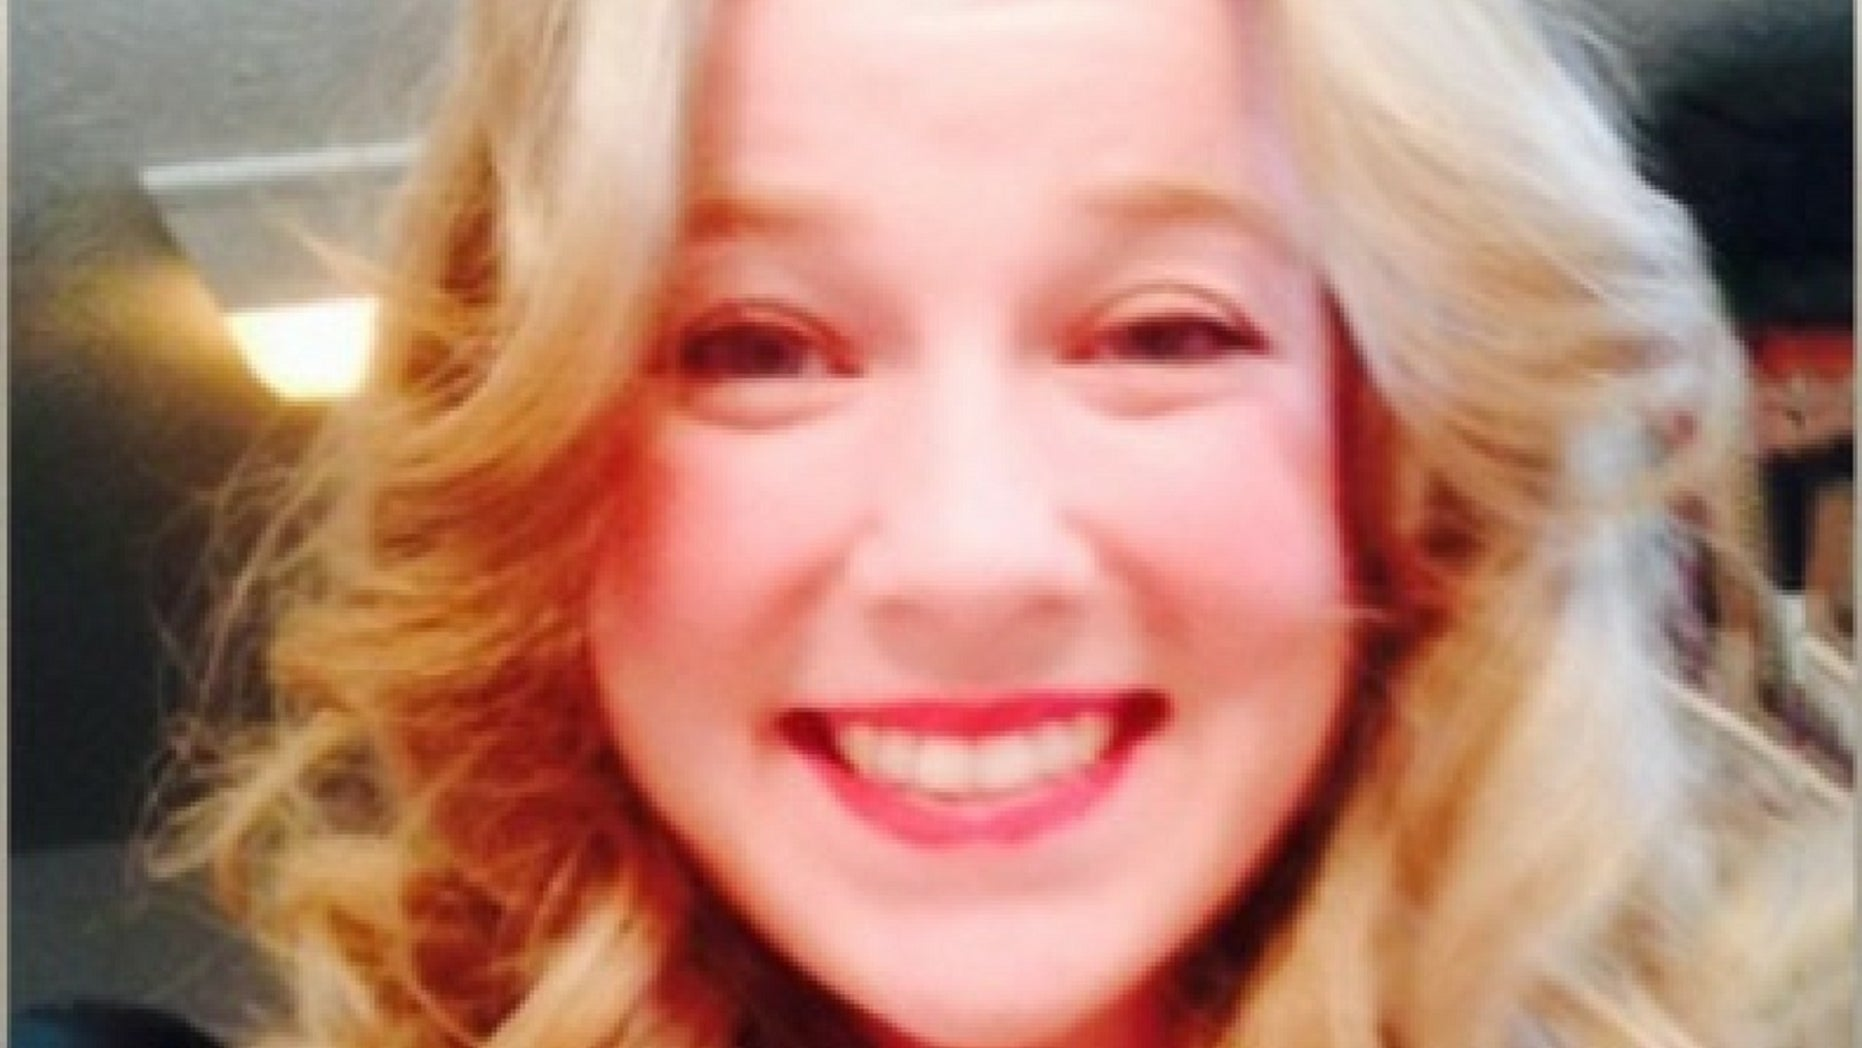 Rachael Anderson was found murdered a day after her 24th birthday.